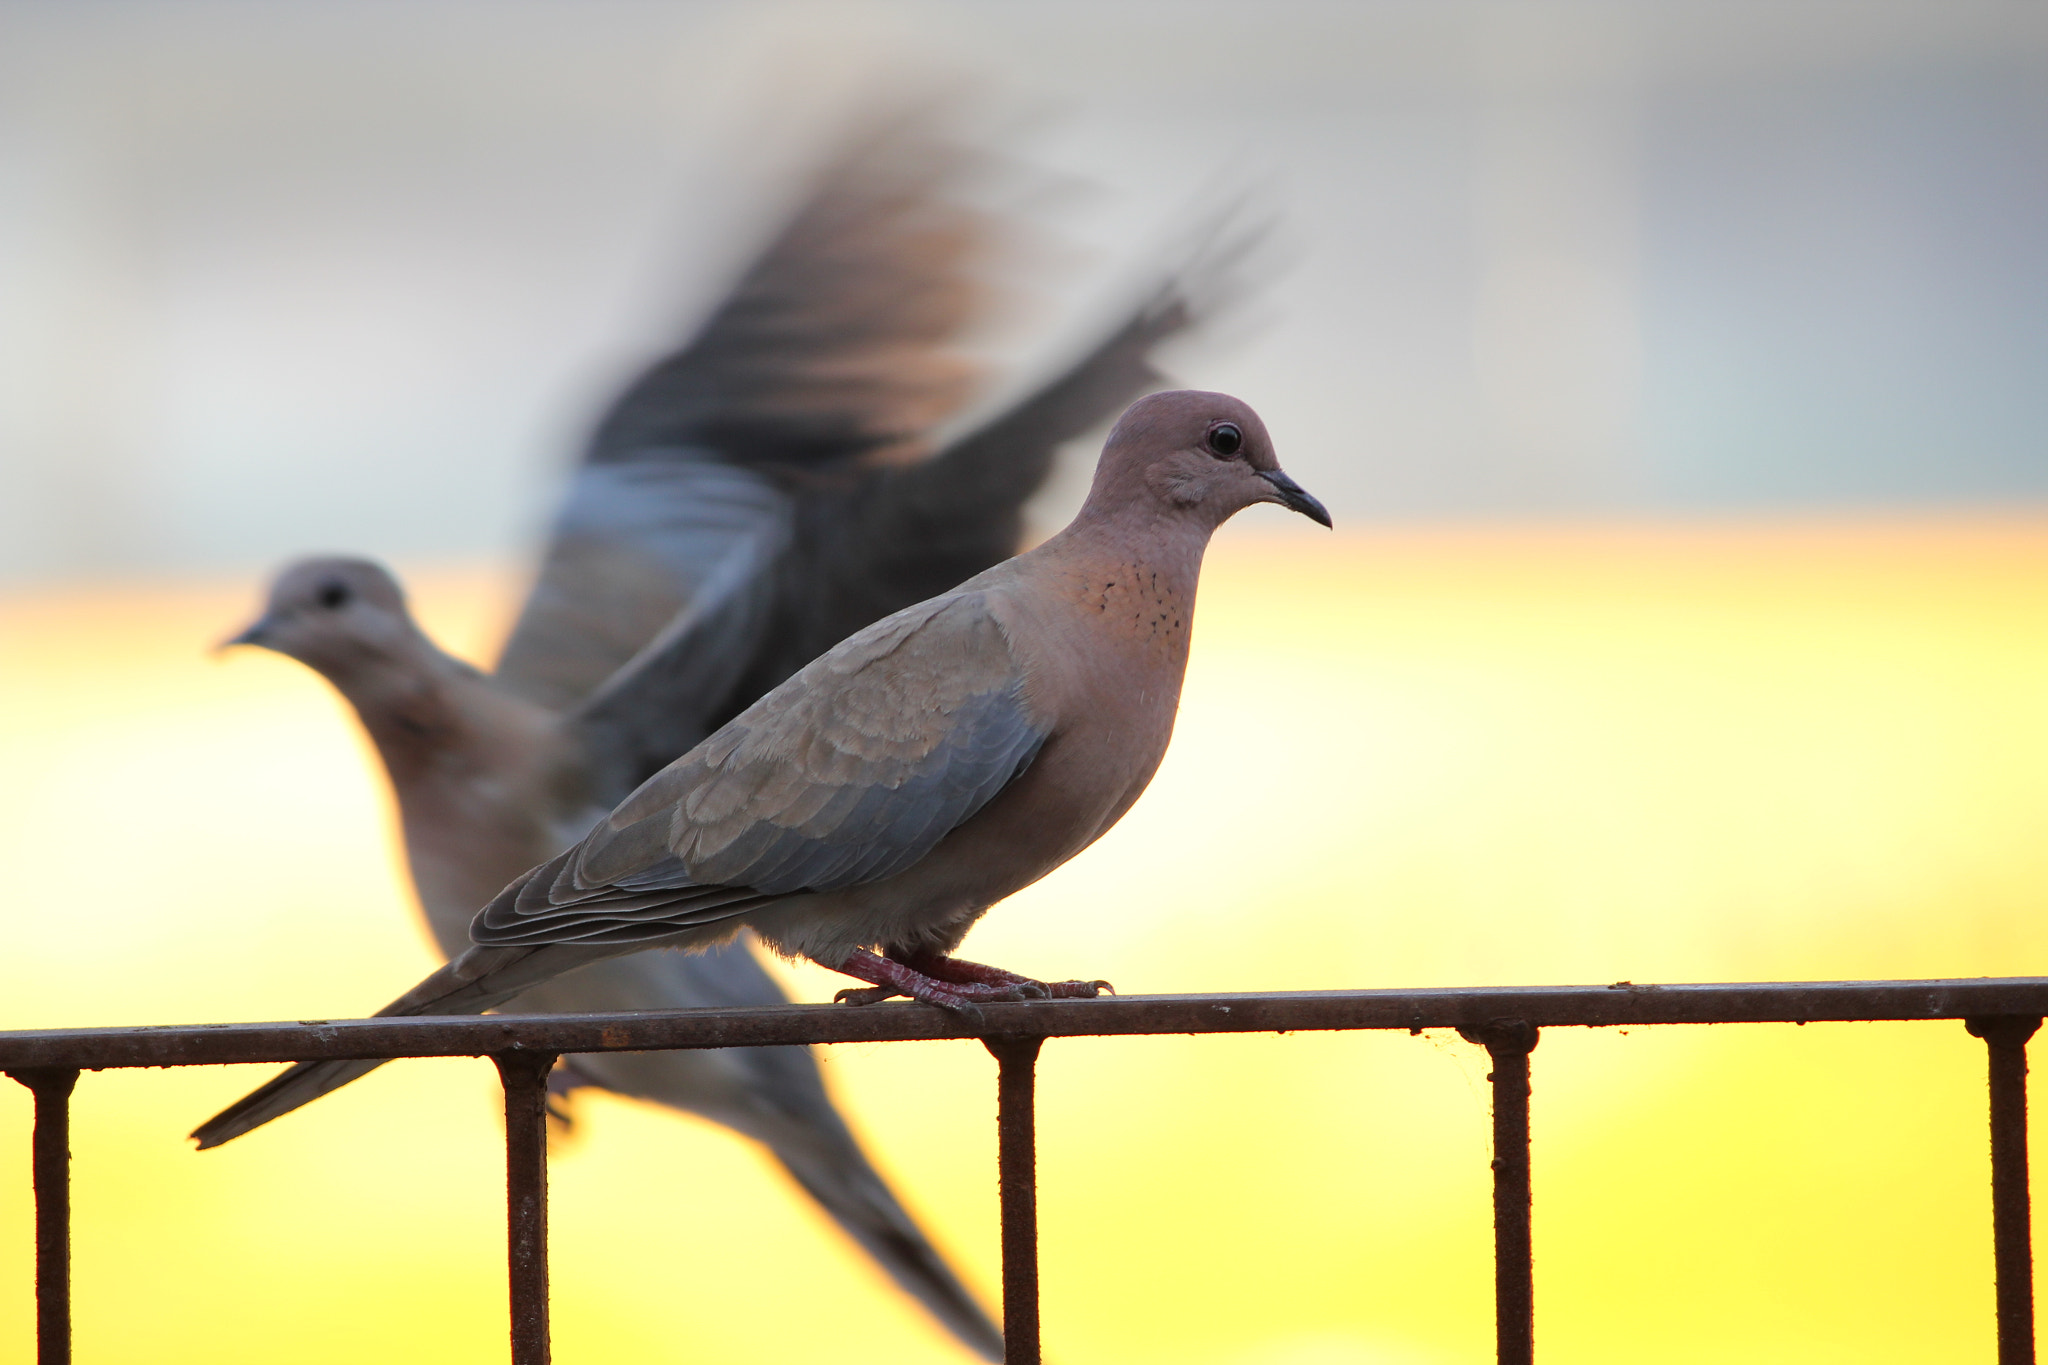 Photograph Flying vs standing - Dove by Mihir Dhandha on 500px